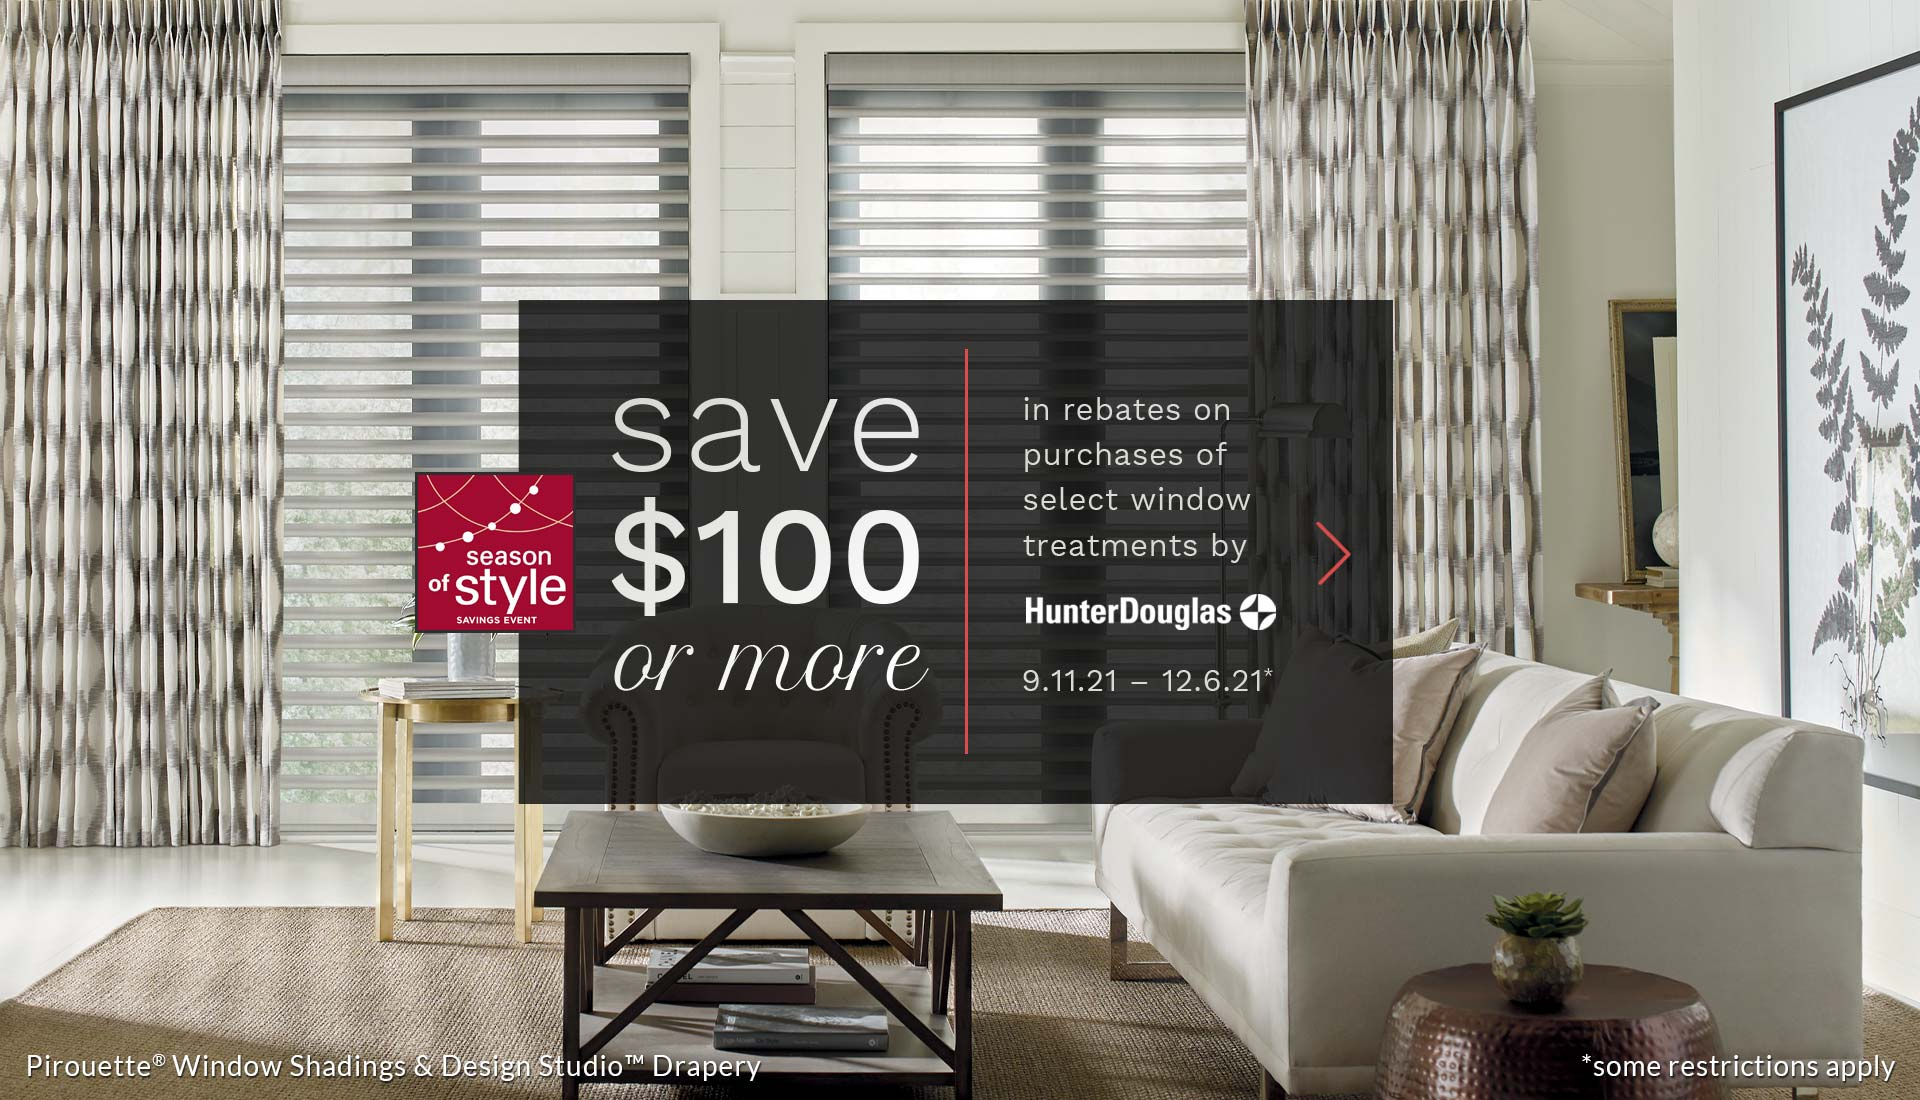 save 100 or more on select products now through december 8, 2021